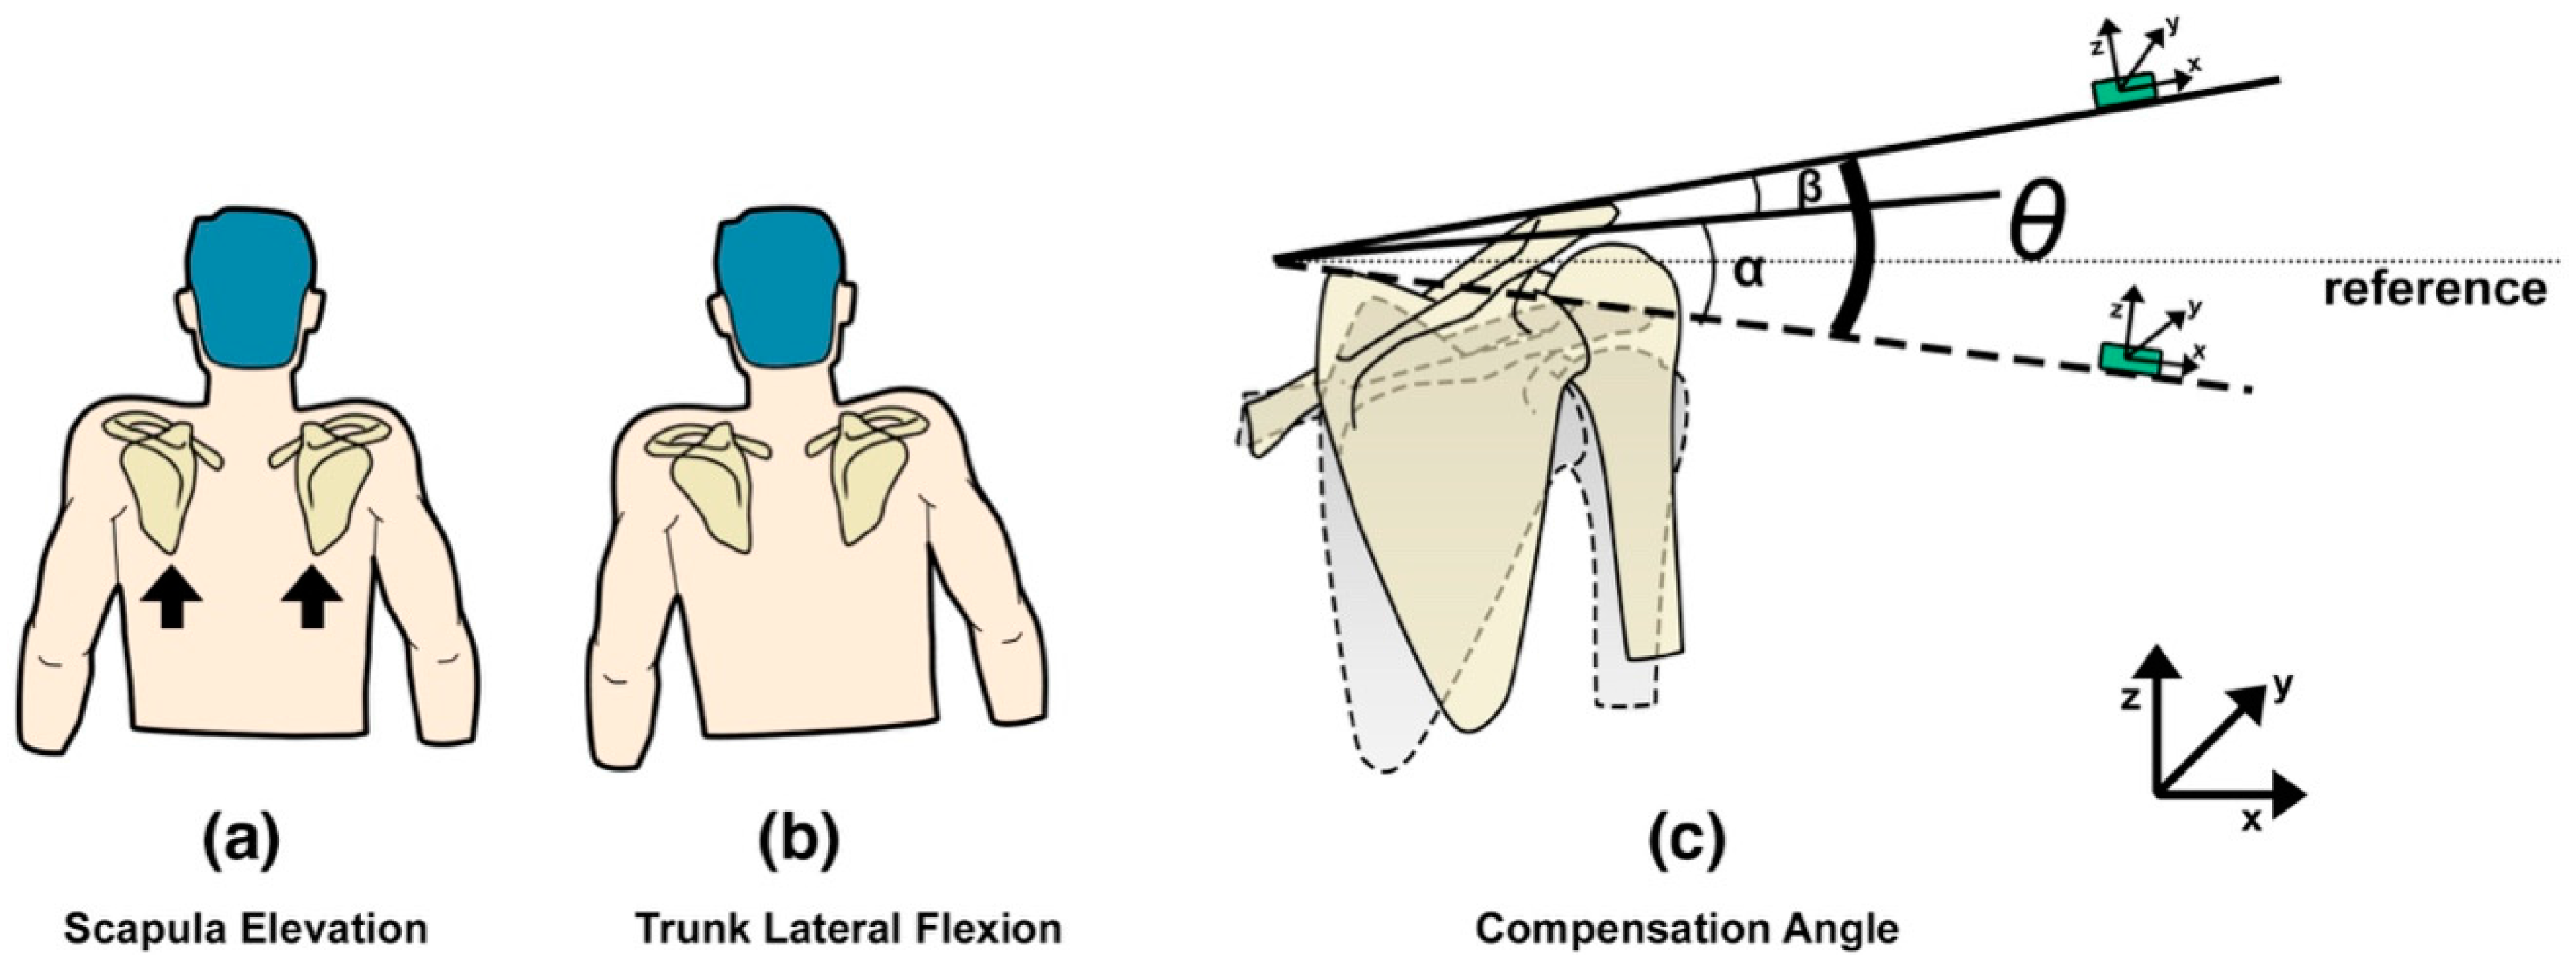 Sensors | Free Full-Text | Motor Control Training for the Shoulder ...